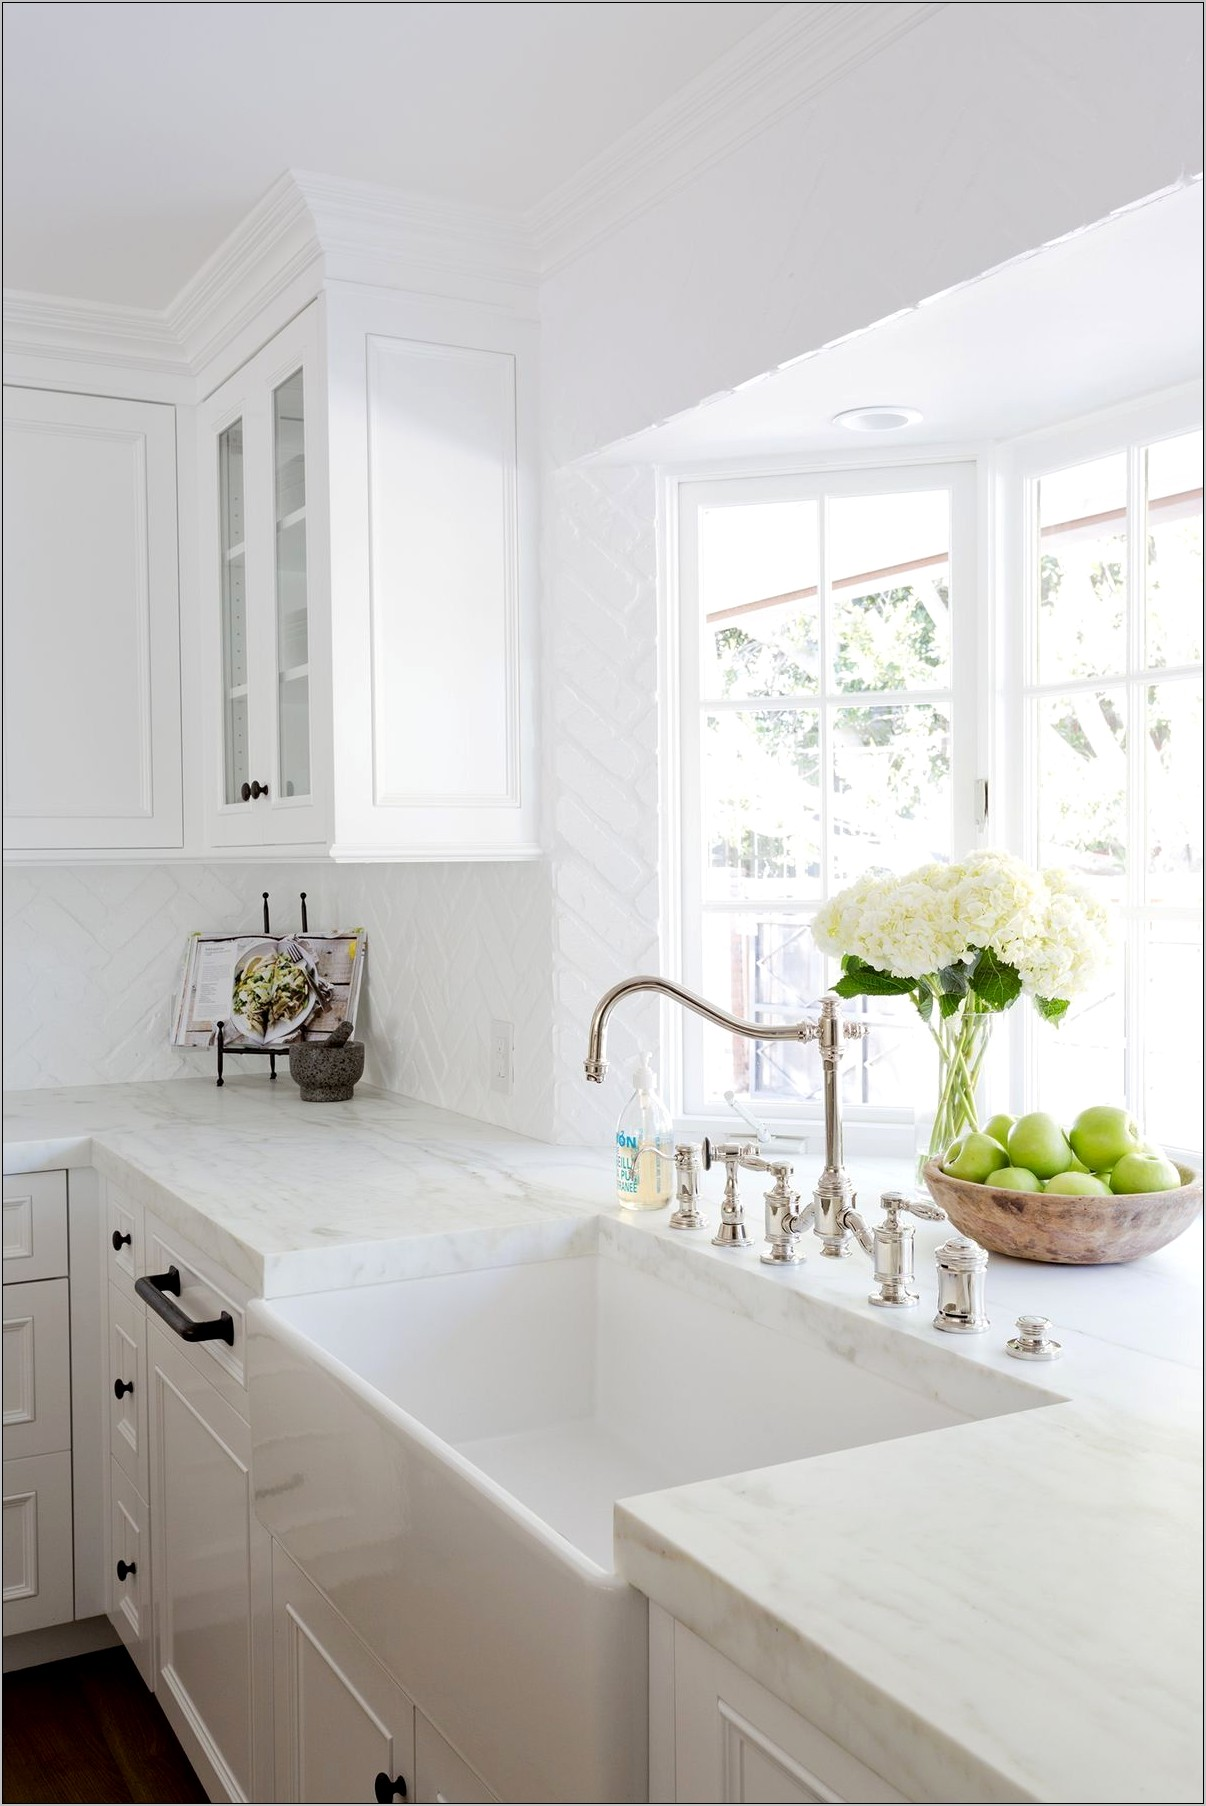 Decorating Kitchen Sink Bay Window